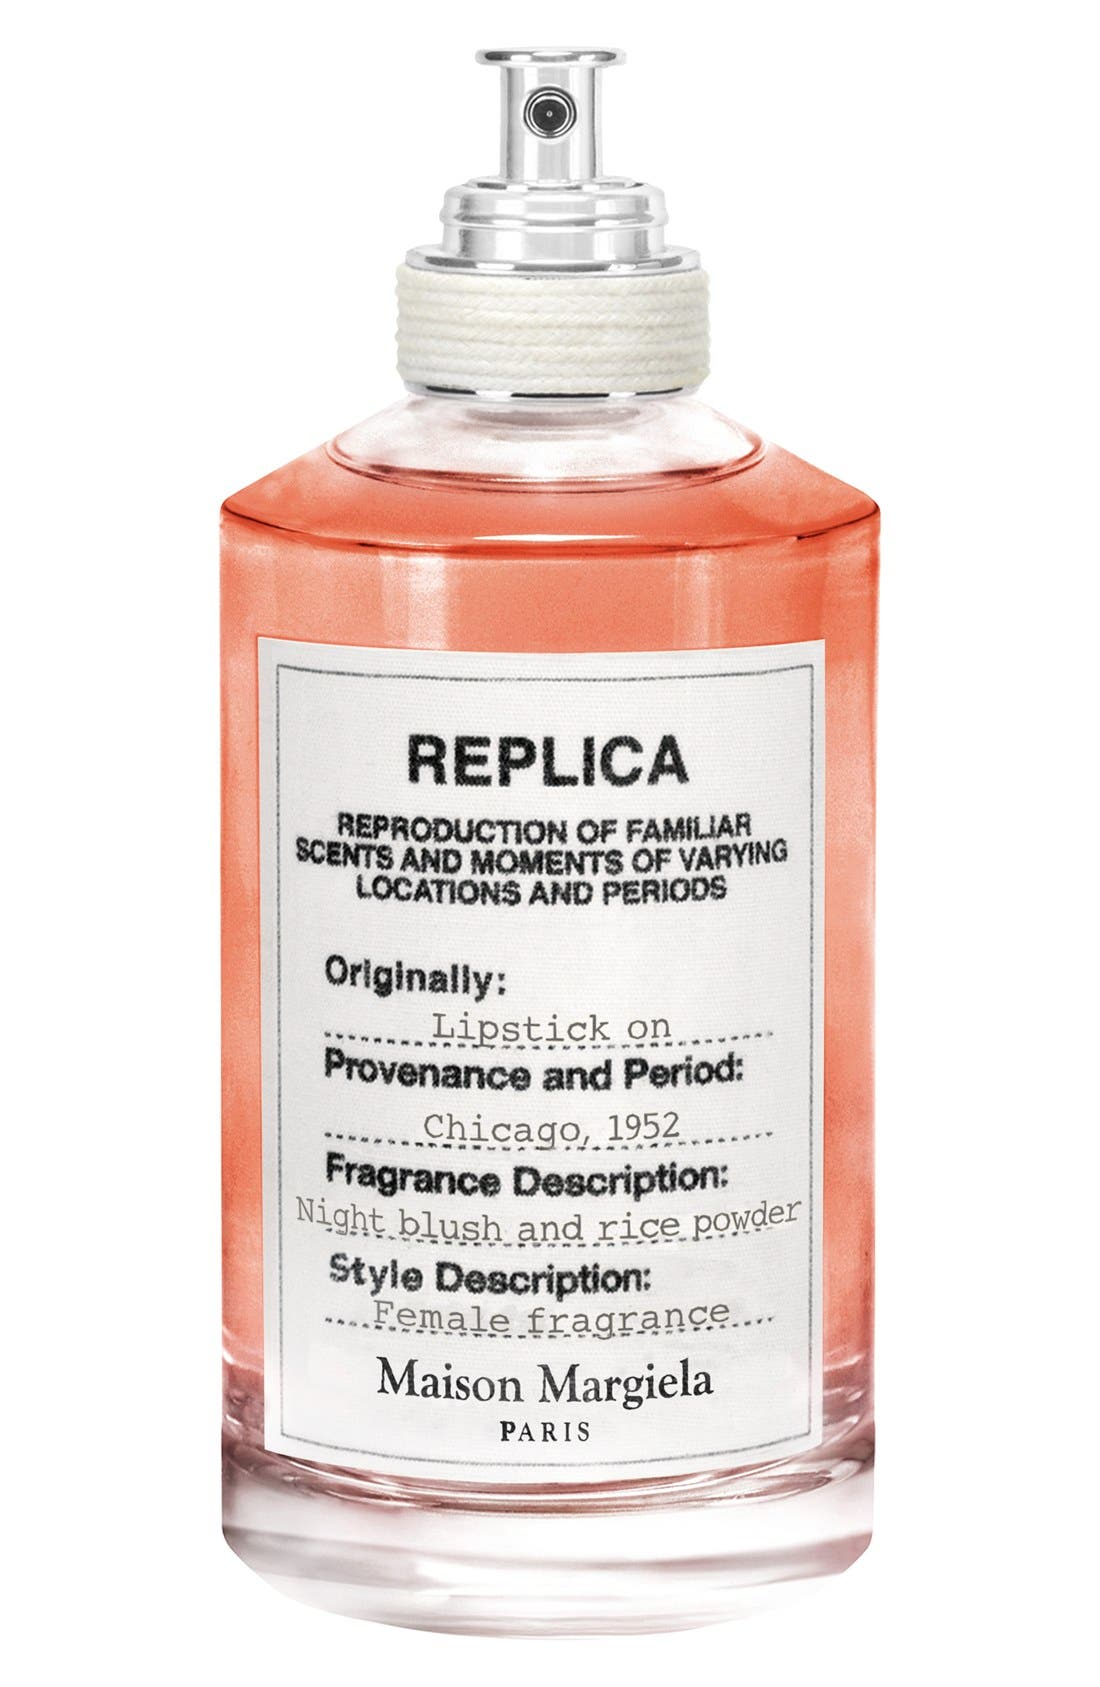 Maison Margiela Replica Lipstick On Fragrance